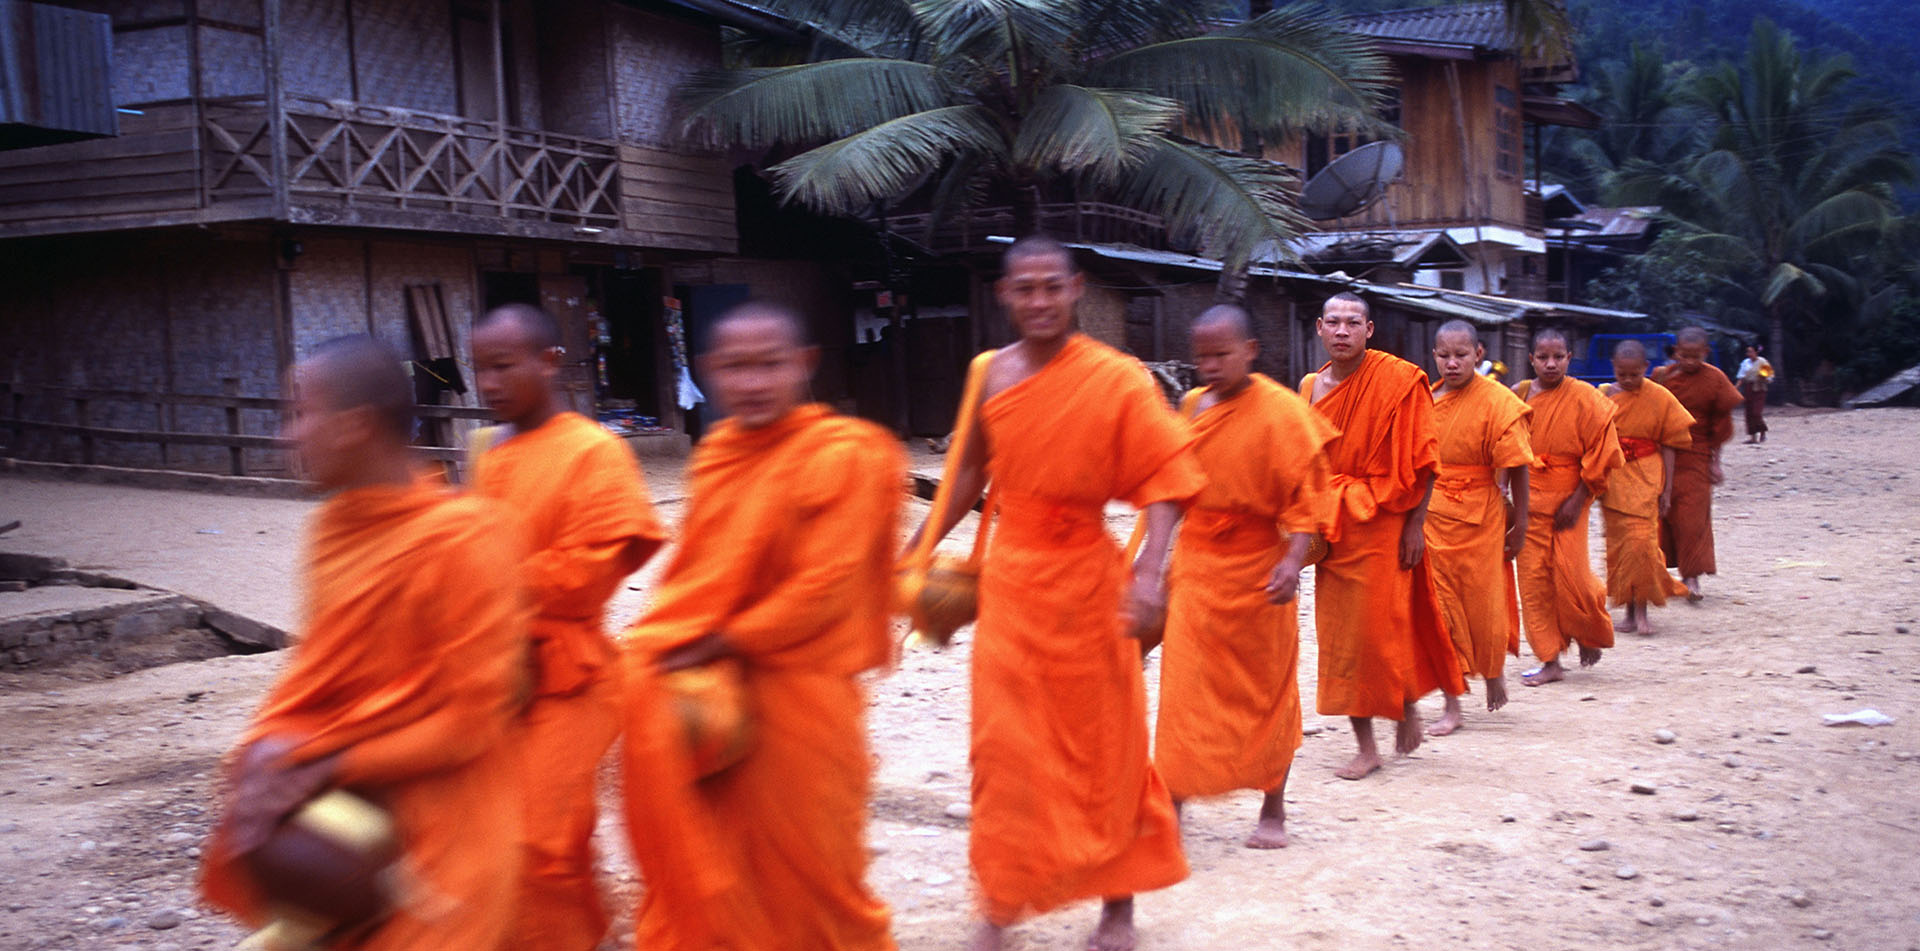 Asia Laos Luang Prabang Buddhist monks in orange participating during alms giving ceremony - luxury vacation destinations